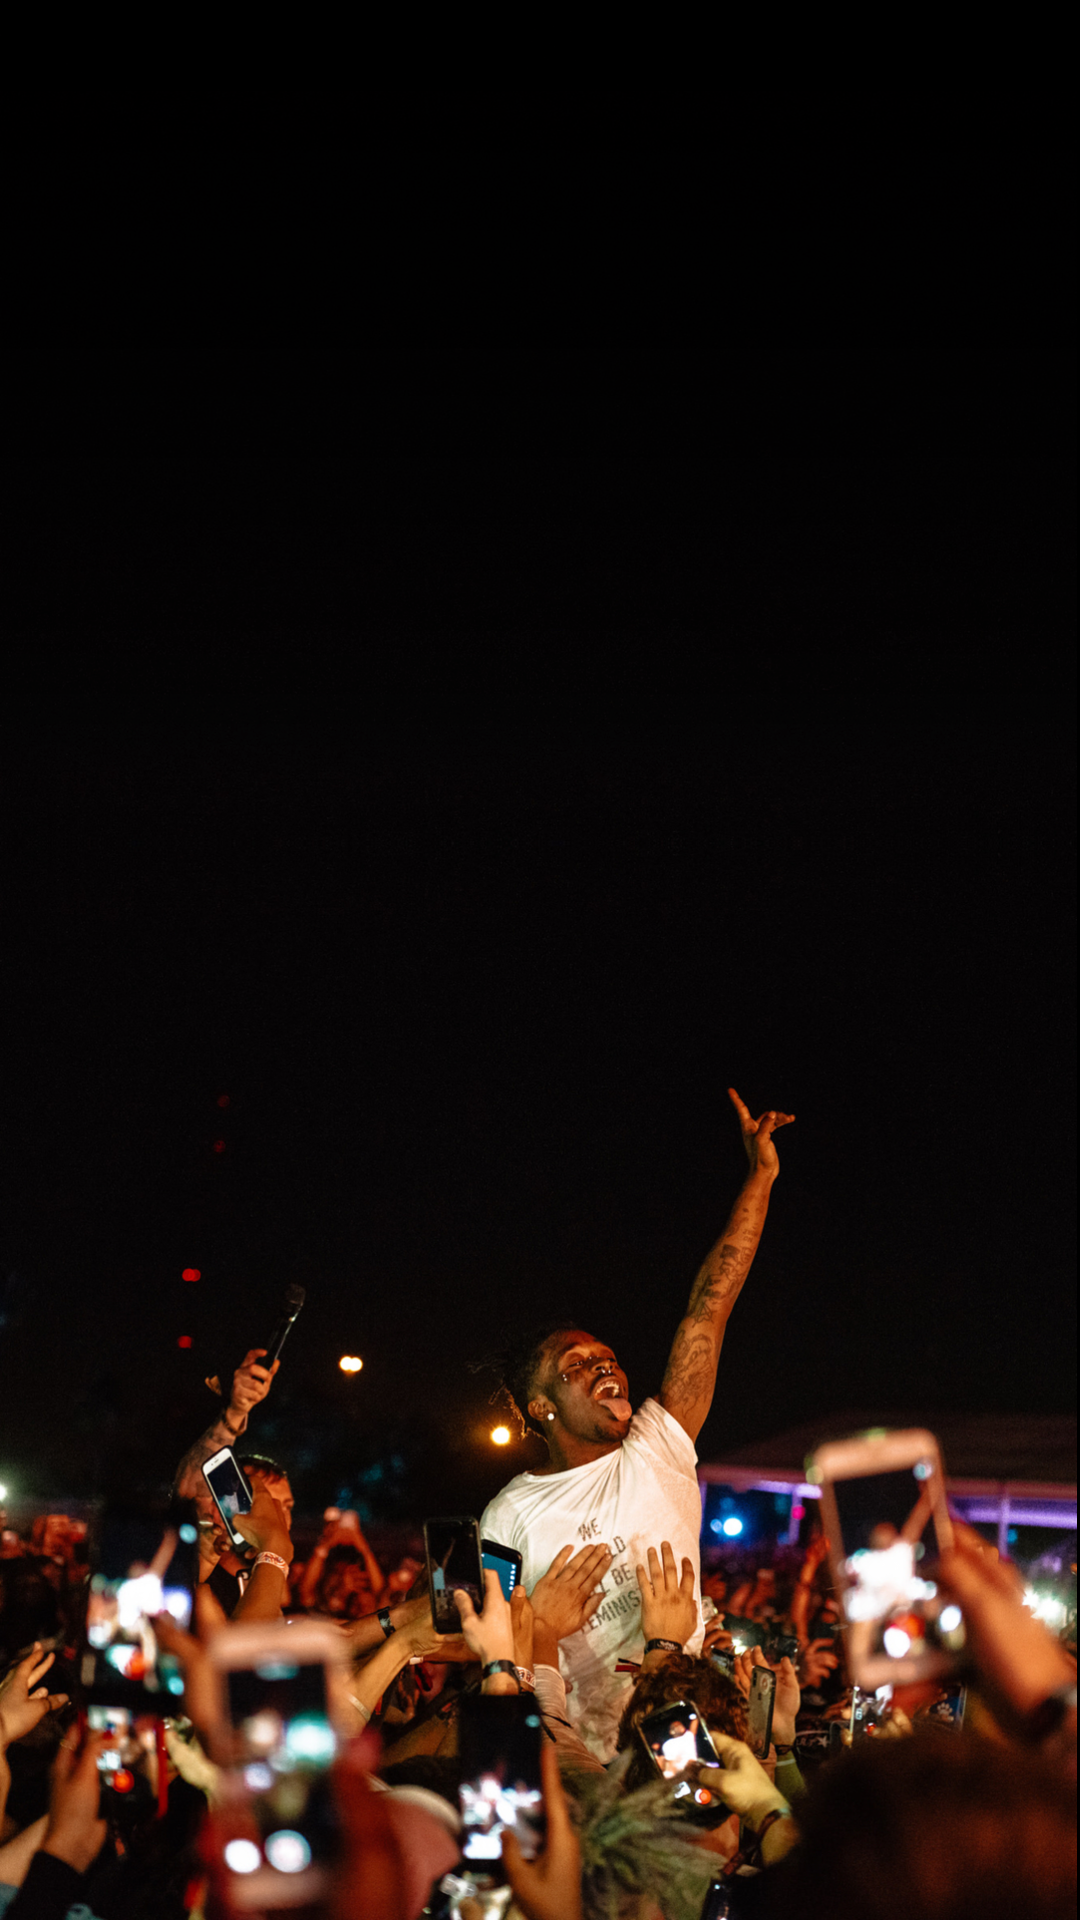 Lil Uzi Background Posted By Michelle Tremblay Another day, another article focused on the net worth of young up and coming rappers. lil uzi background posted by michelle